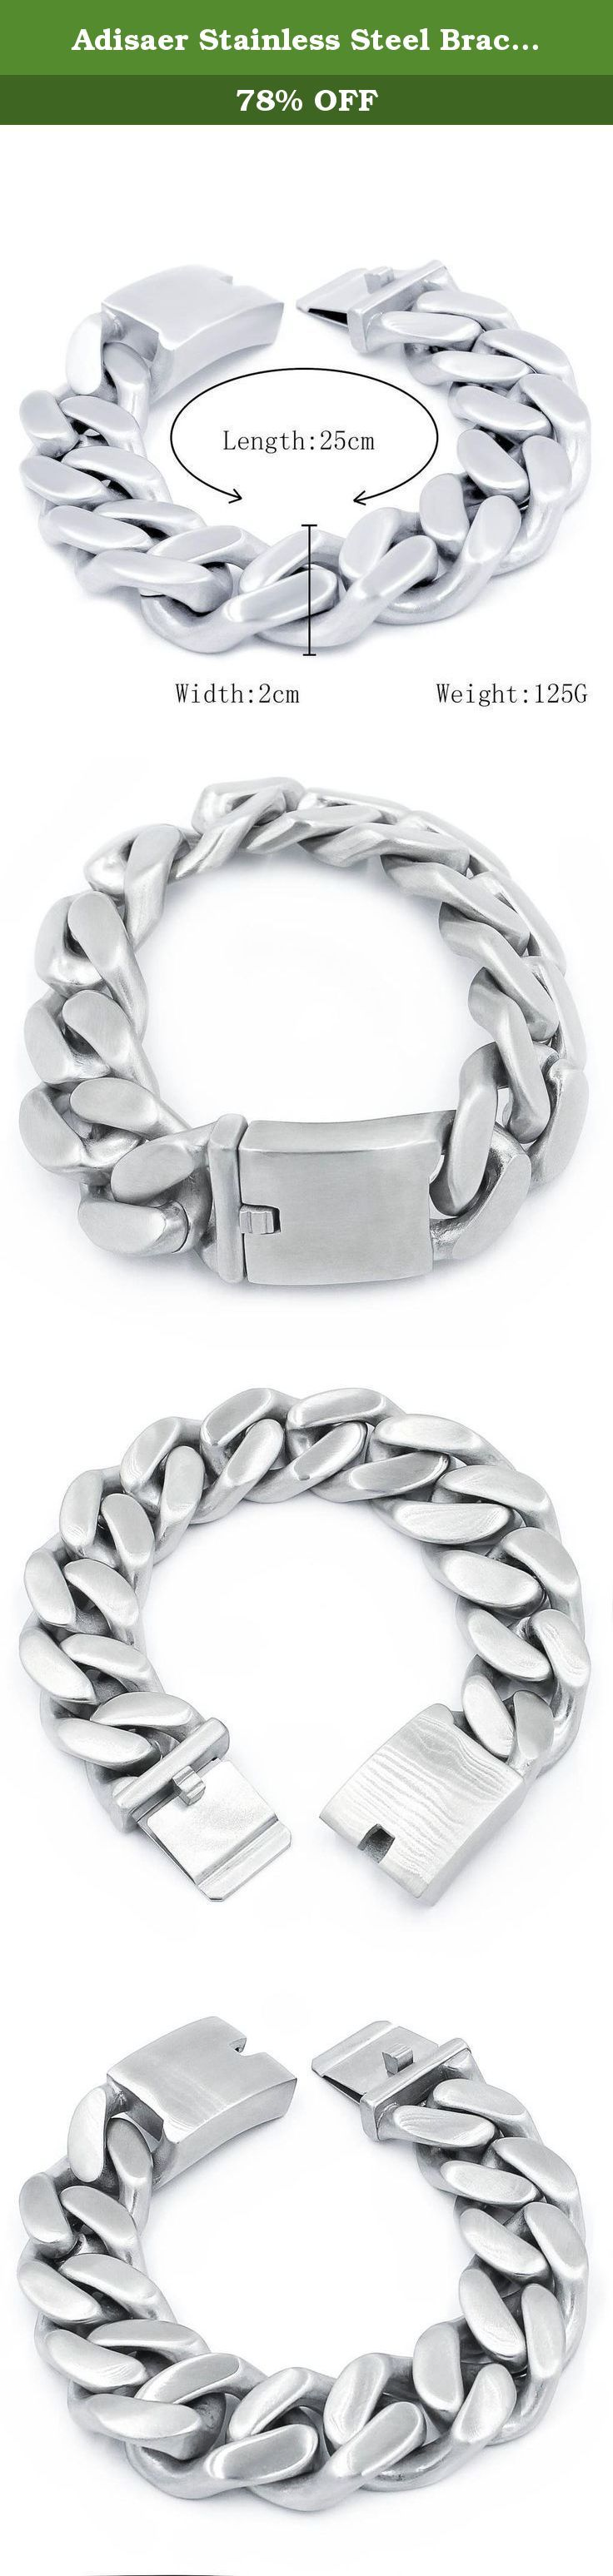 Adisaer Stainless Steel Bracelet Curb Honed Chain Length 25cm Weight 125g. This bracelet is a perfect gift for a man. The bracelet is made of durable highly polished 100% stainless steel. Give it to your true gentleman, or treat yourself for a trendy bracelet style. The bracelet features a modern yet classic fashionable curb chain design. A buckle type of a clasp allows to lock the jewelry securely around your wrist. Gents cutting edge bike chain bracelet, contrasting with the high polish...